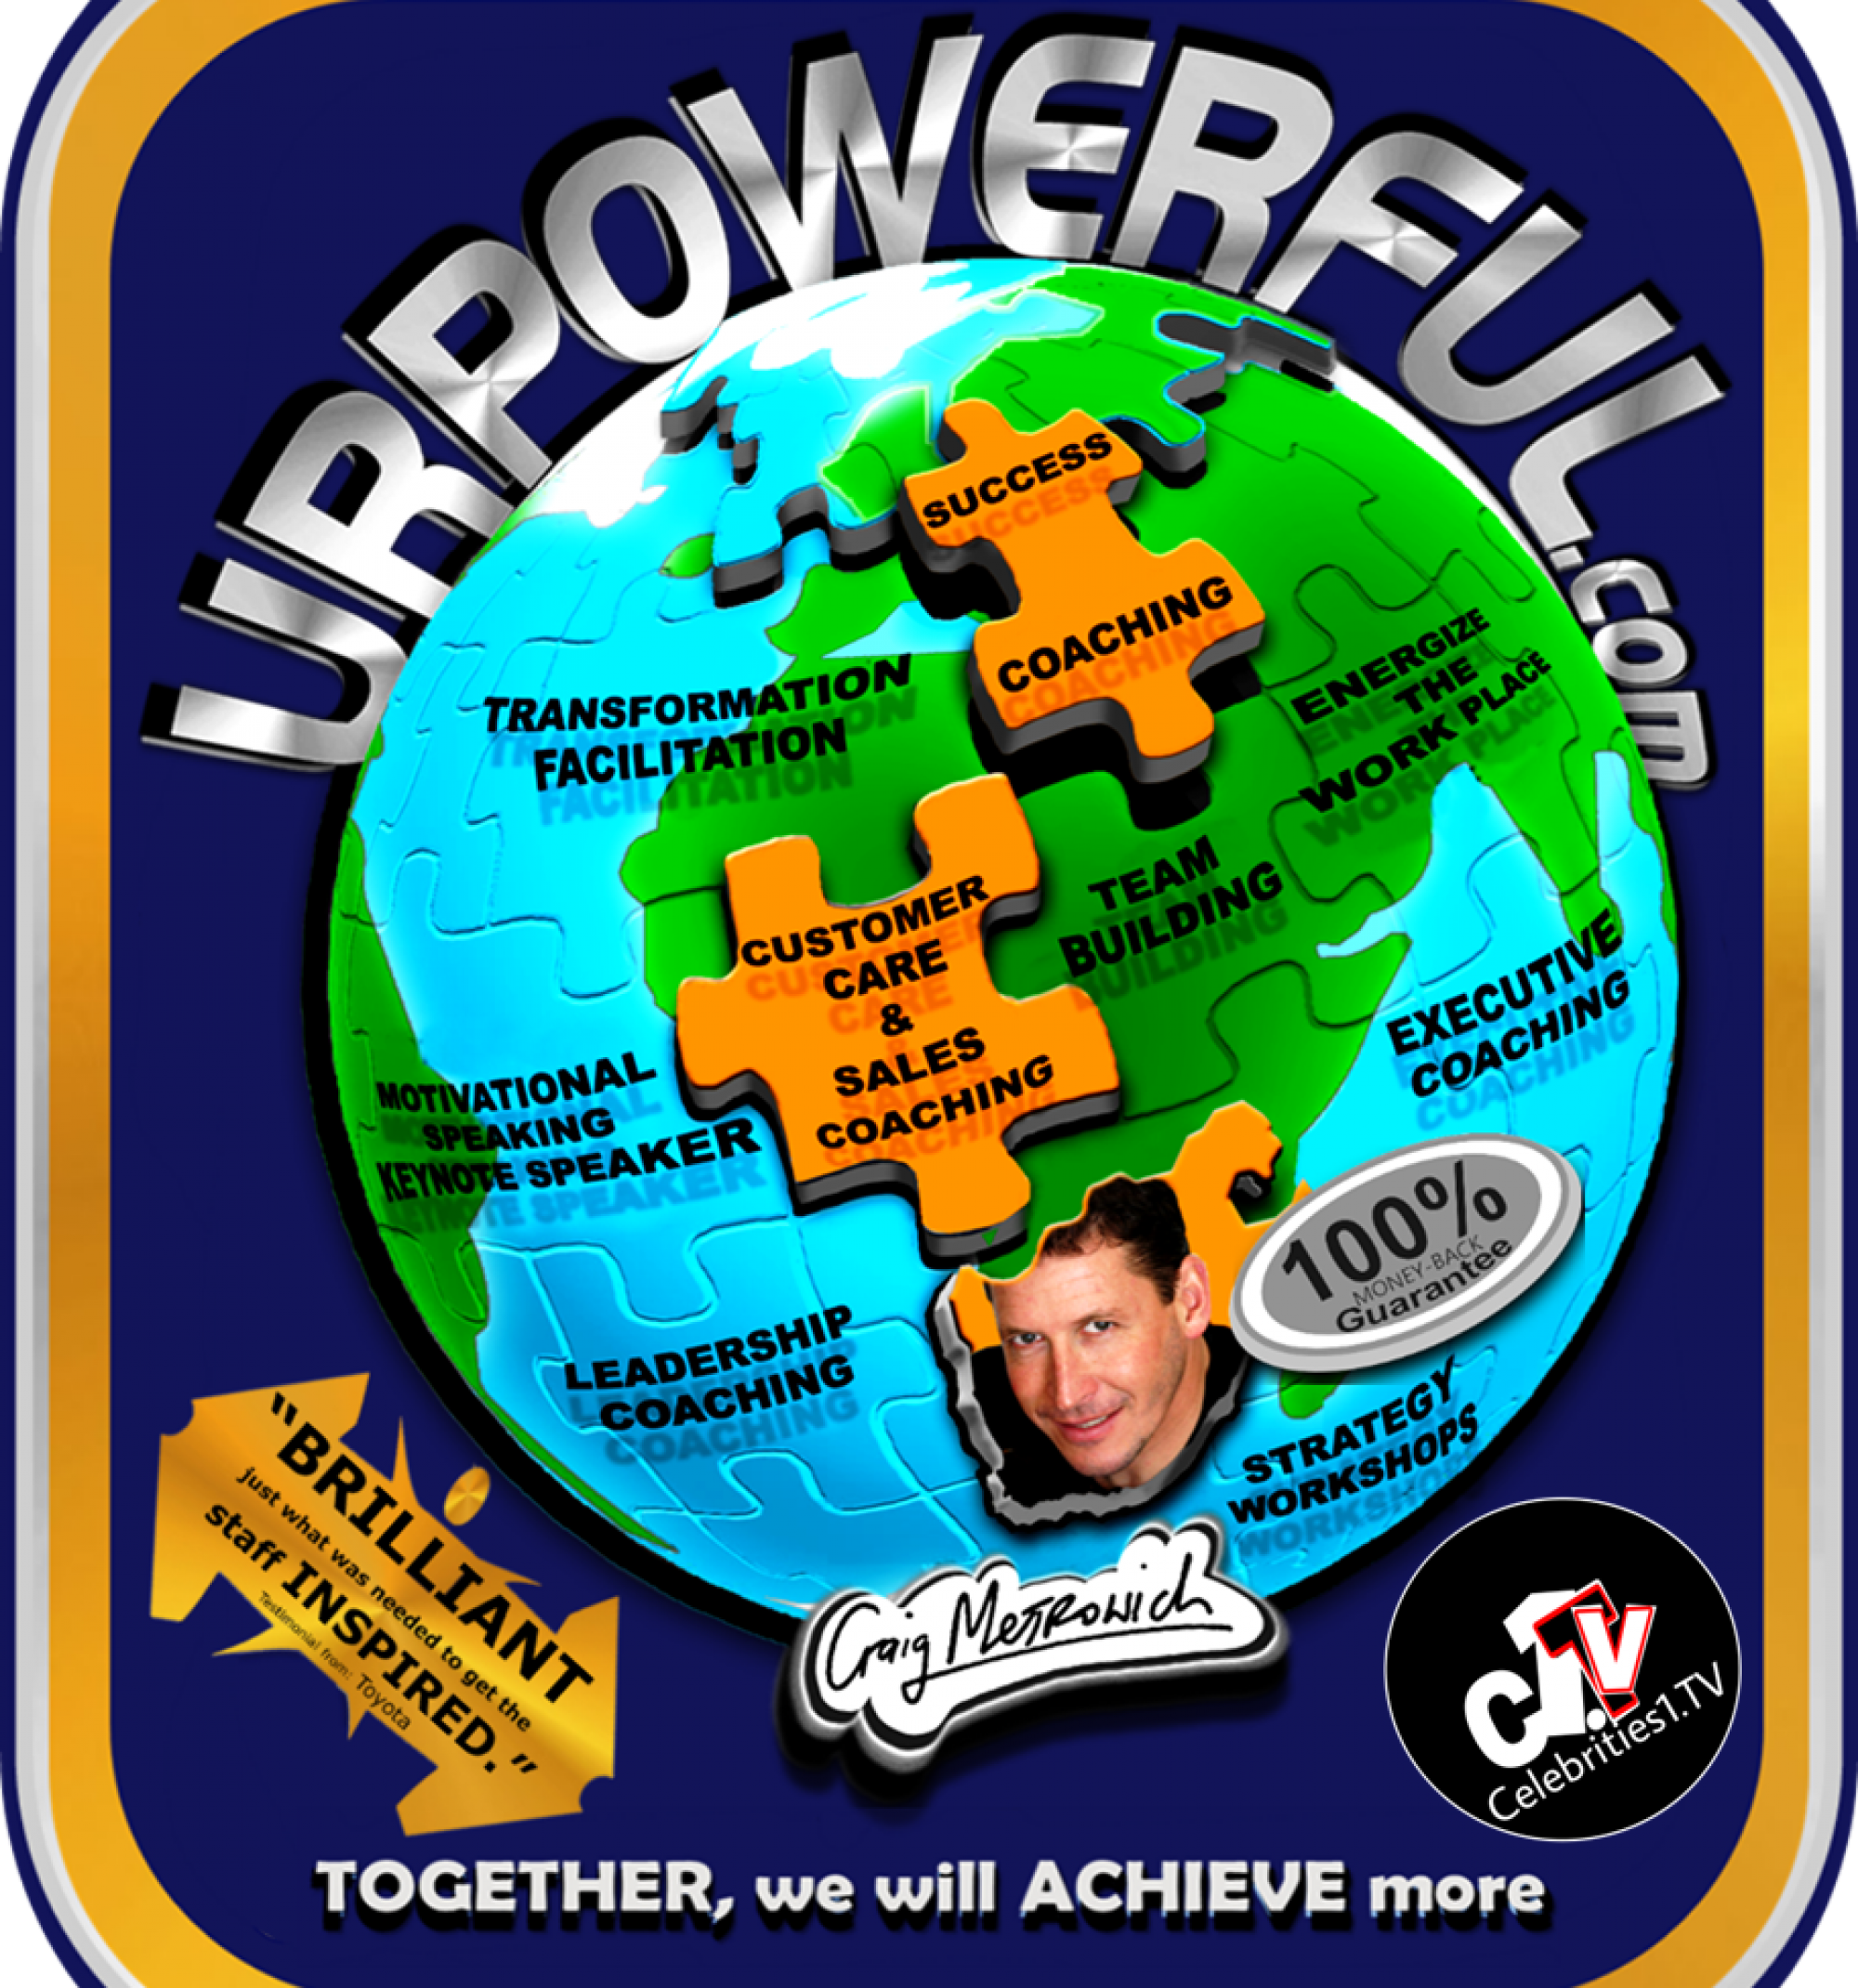 U R POWERFUL Coaching Craig Metrowich [ www.URPOWERFUL.COM ]